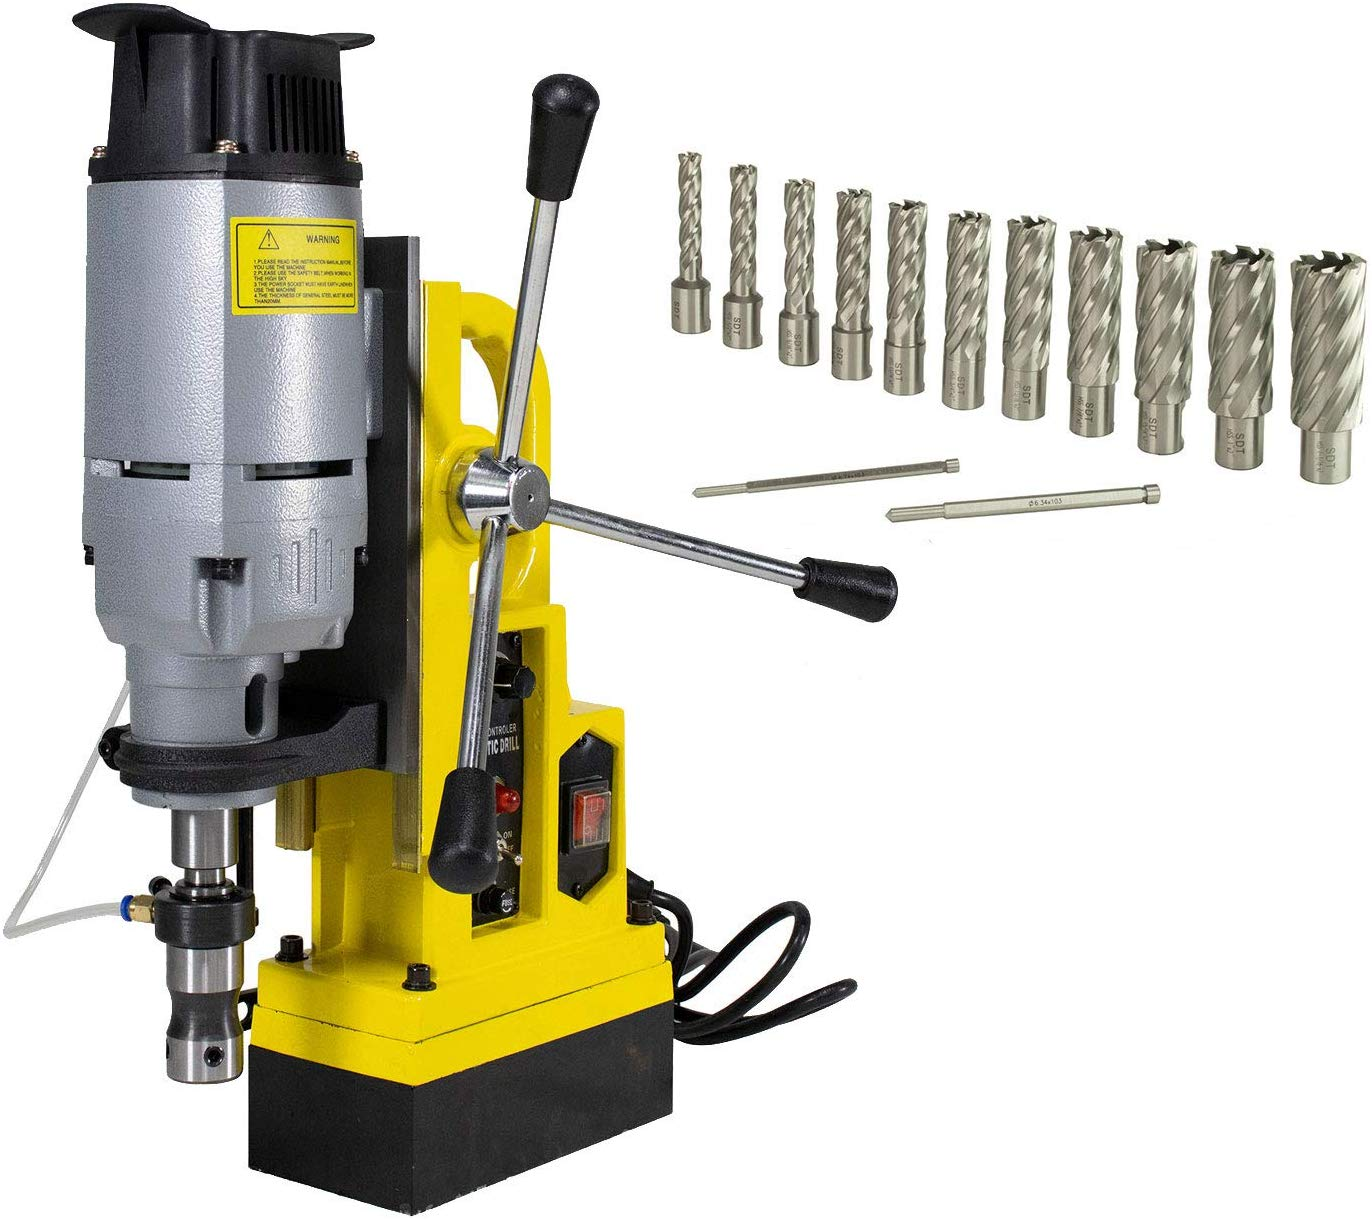 Steel Dragon Tools MD45 Magnetic Drill Press with 13PC 2